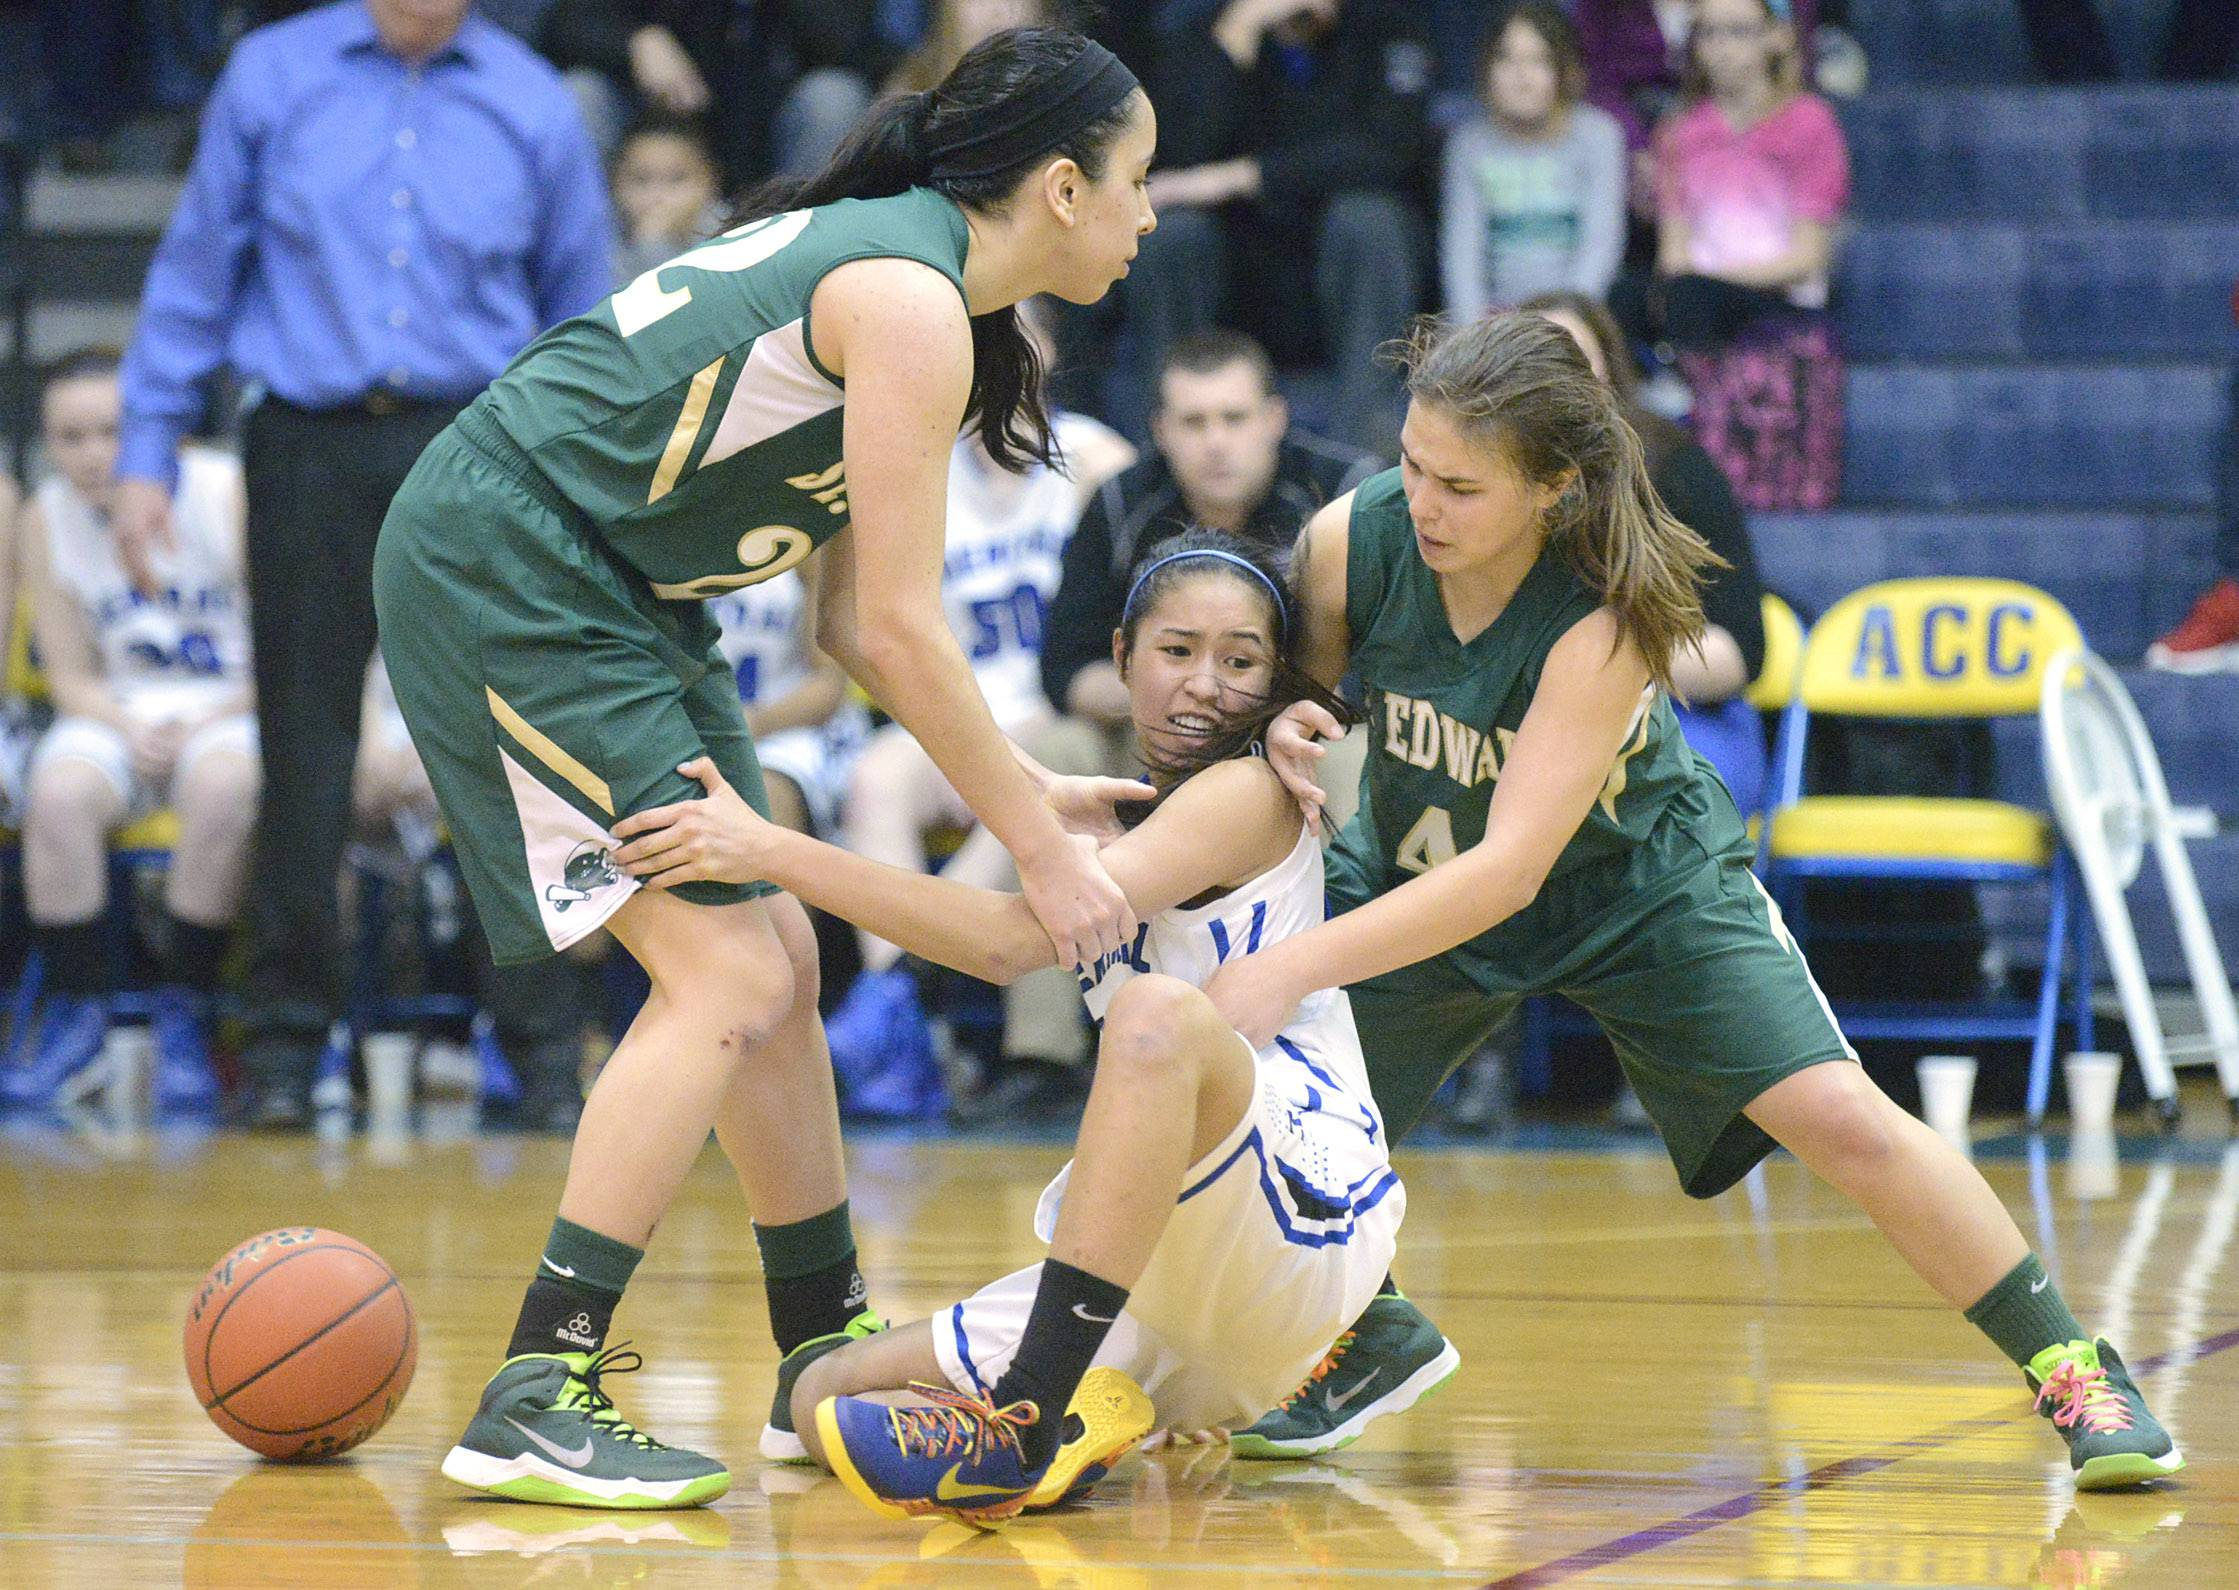 Burlington Central's Samantha Cruz is blocked from regaining the ball by St. Edward's Clarissa Ramos, left, and Madelyn Spagnola in the fourth quarter of the Class 3A regional championship game on Saturday in Aurora.